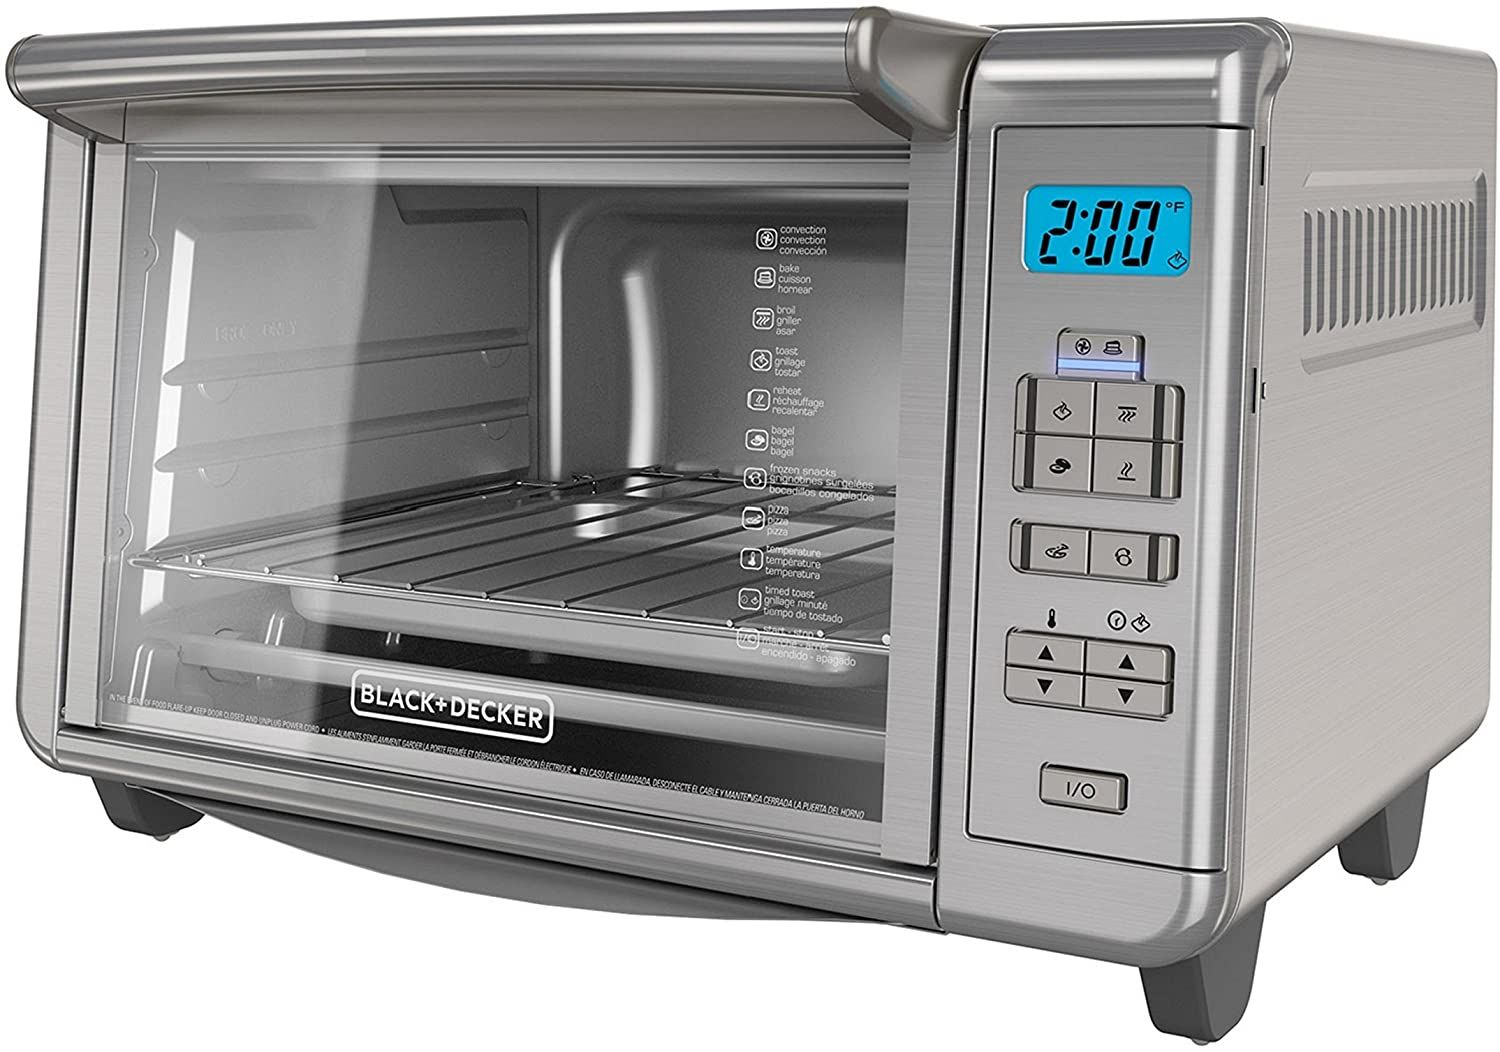 Top 5 Best sam's club toaster oven Review in 2020